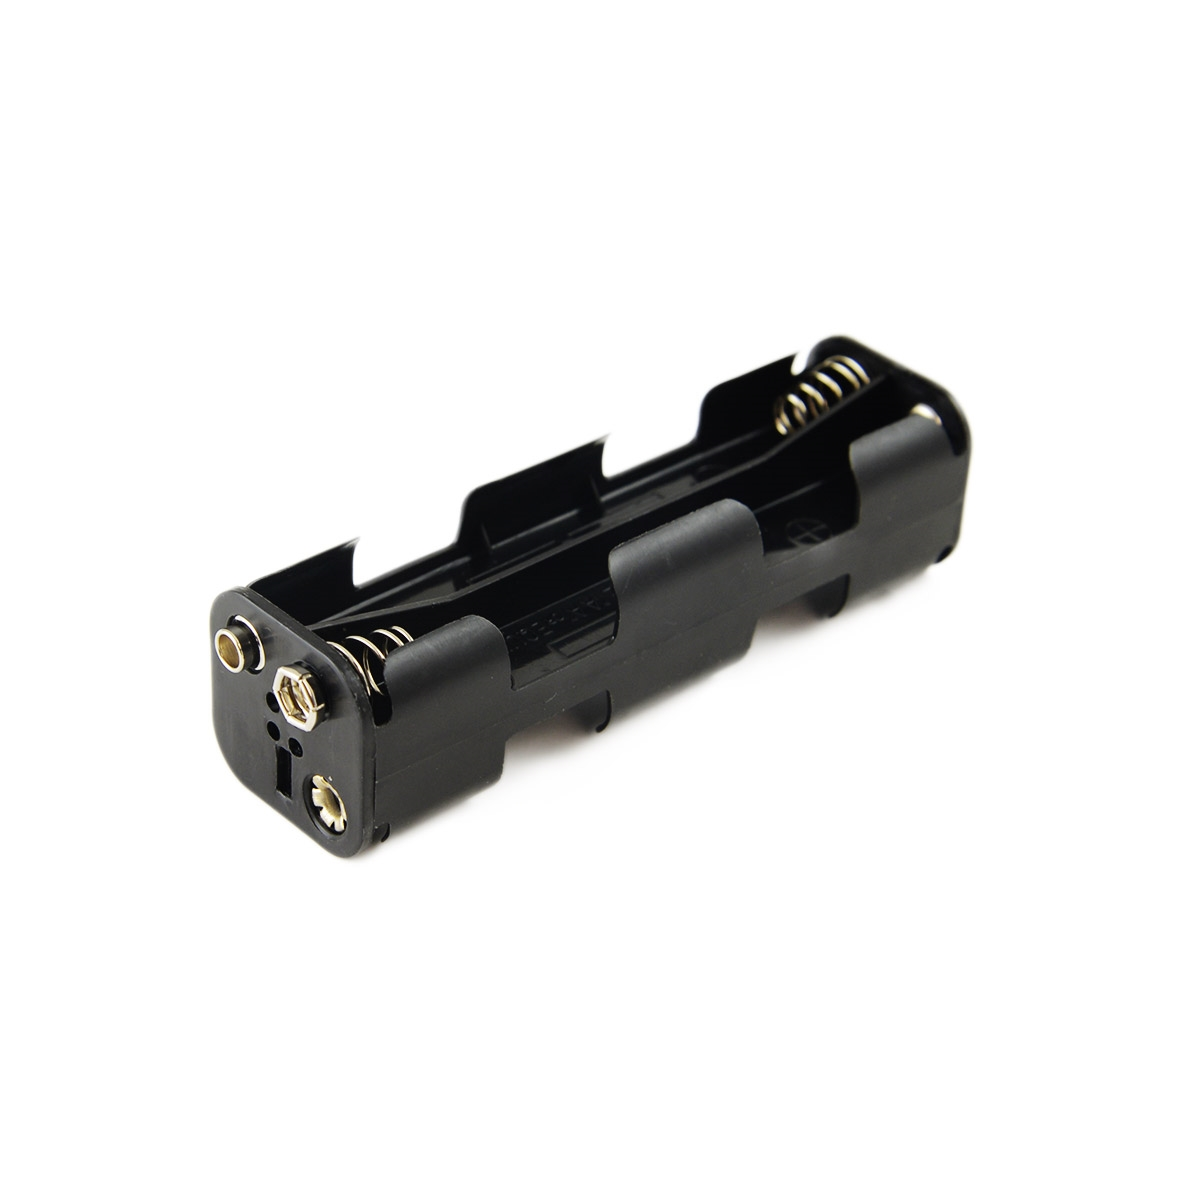 0705-0119, Battery Holder for Gold Monster 1000